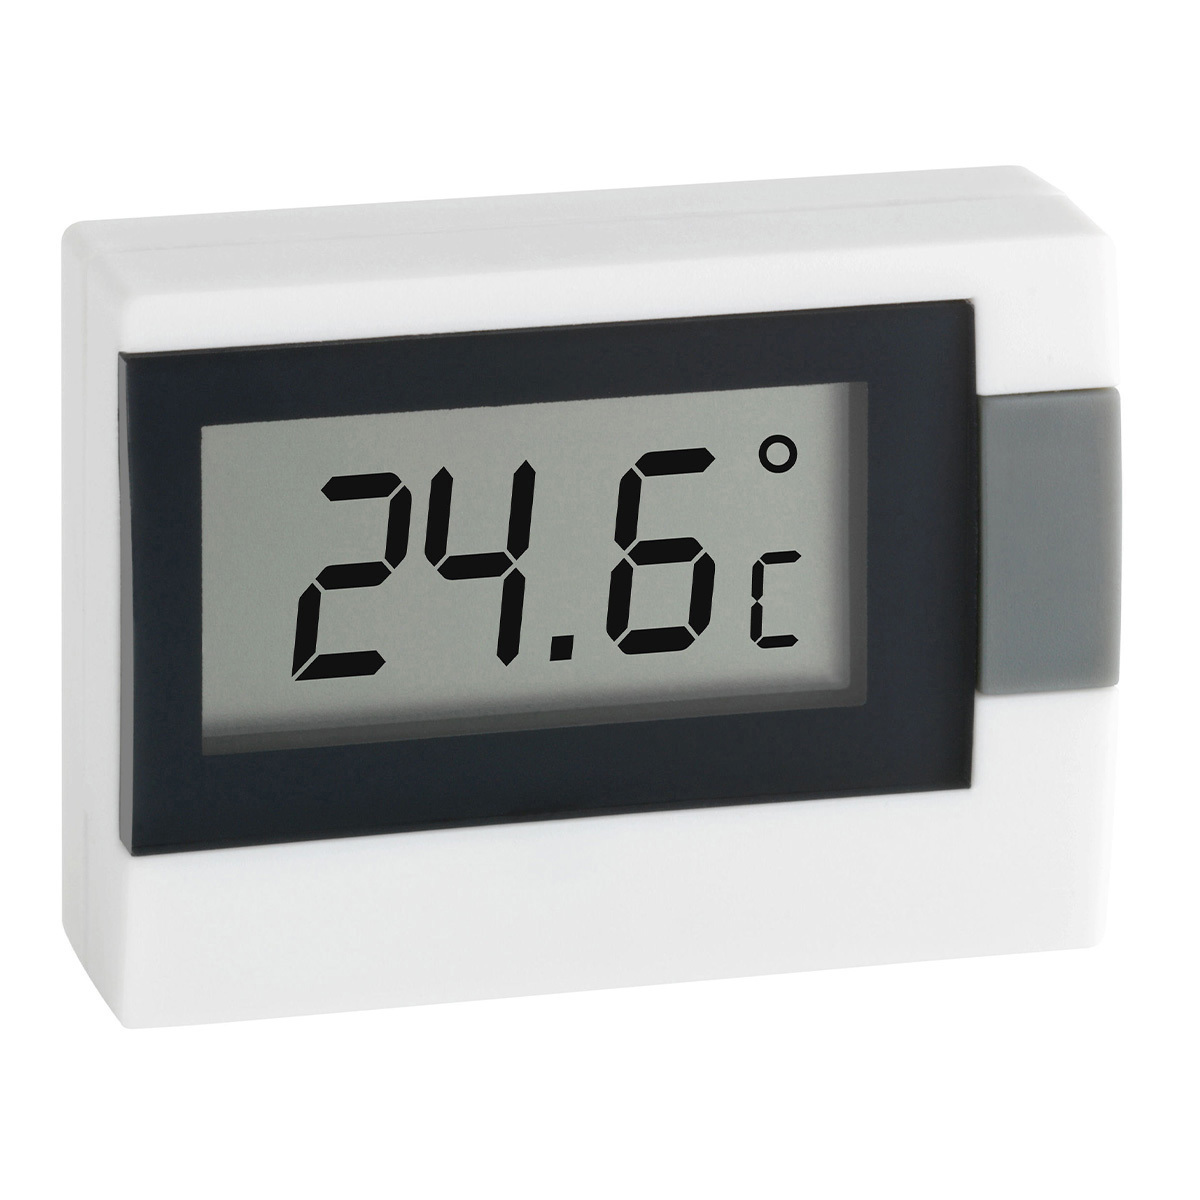 30-2017-02-digitales-thermometer-1200x1200px.jpg